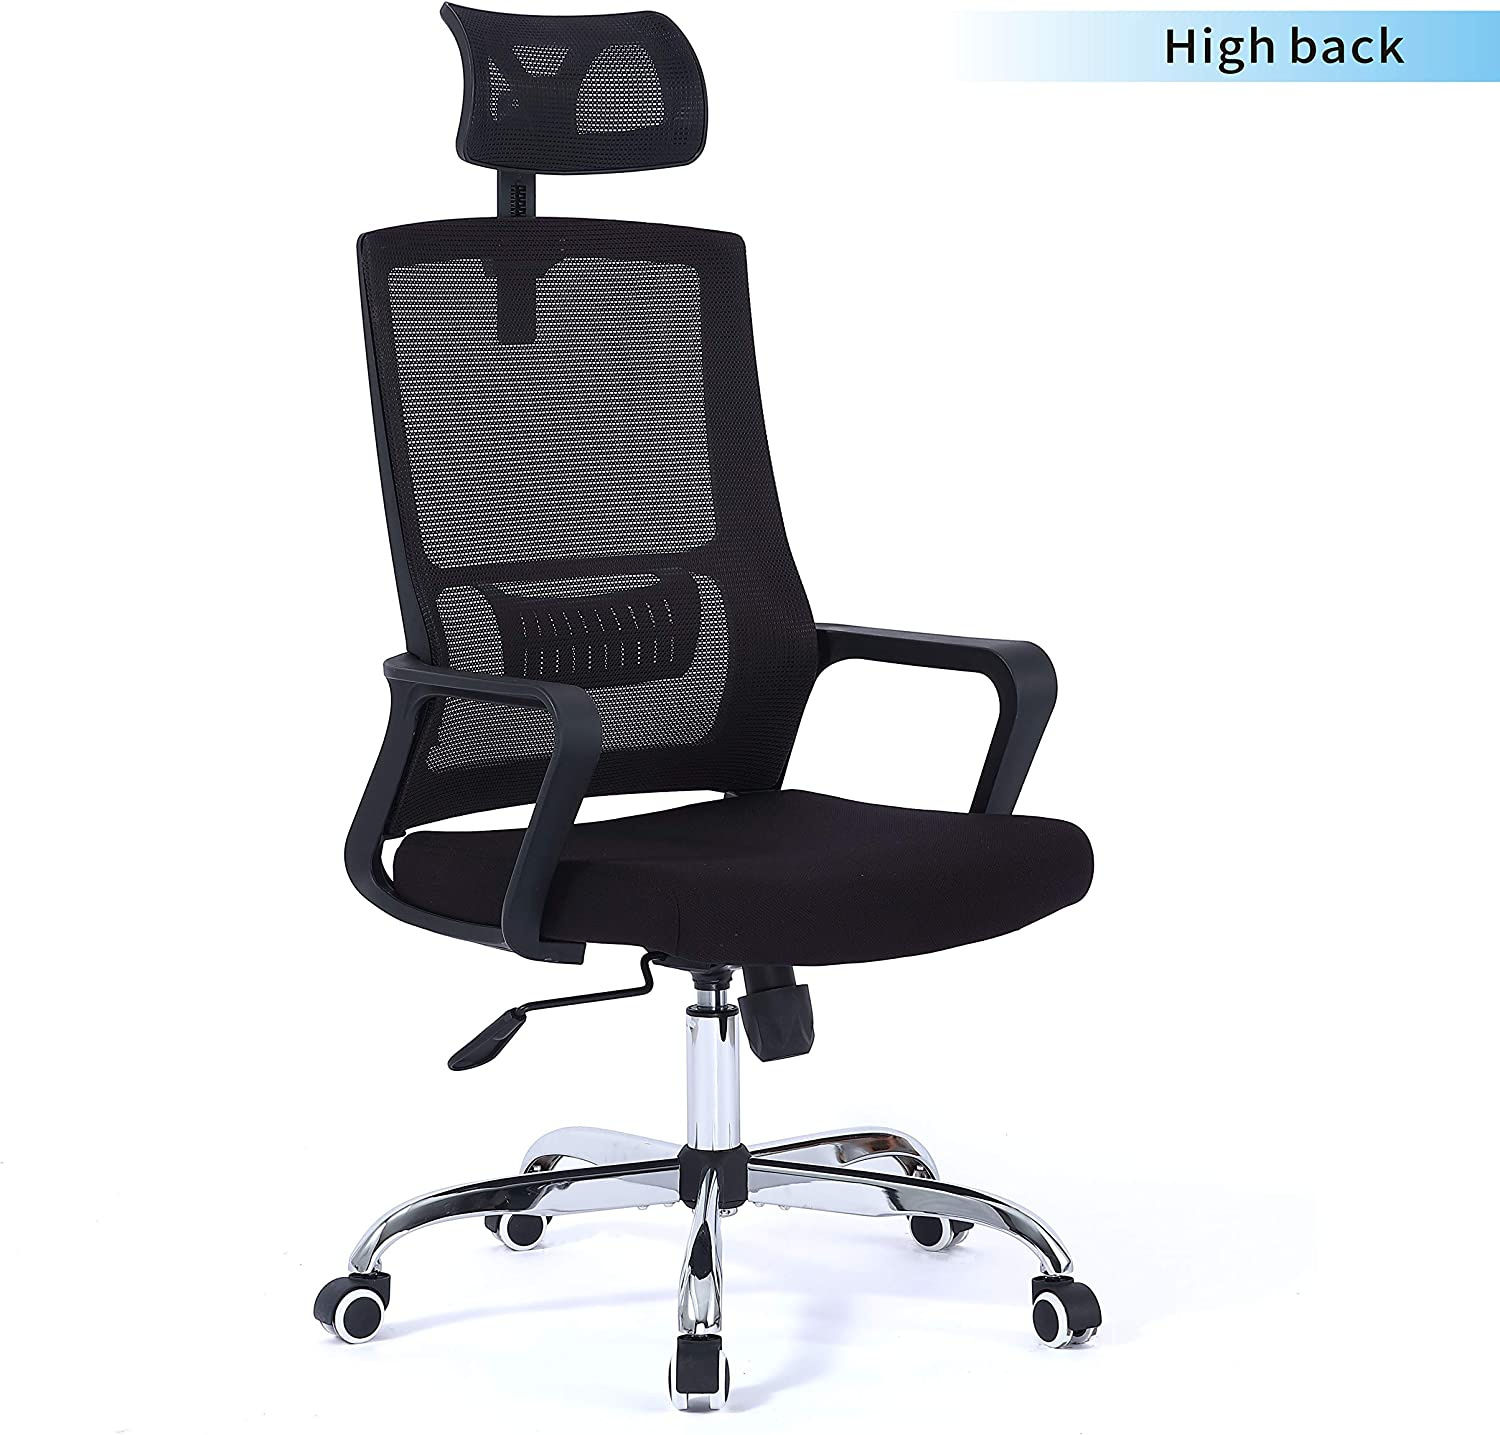 BELND Ergonomic Office Chair, Mesh Chair with Lumbar Support, High Back Desk Chair with Breathable Mesh, Breathable Mesh Seat Cushion, Office Computer Desk Chair with Adjustable backrest and headrest